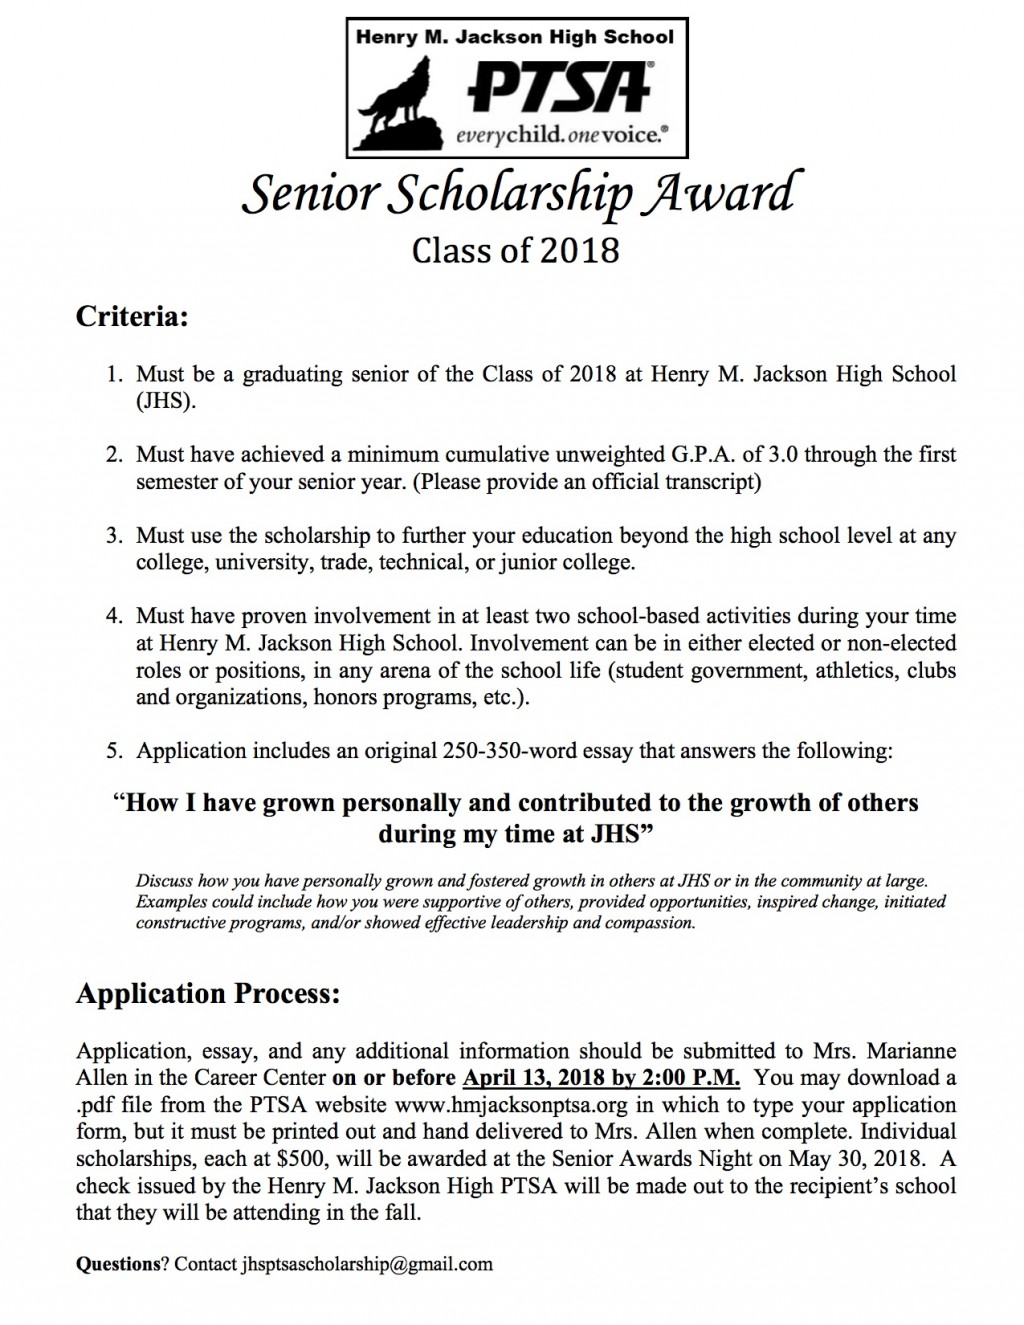 007 Senior Scholarships Henry M Jackson Ptsa No Essay For College Students Scholarship Application 201 With Unbelievable Without Essays Required 2017 Large